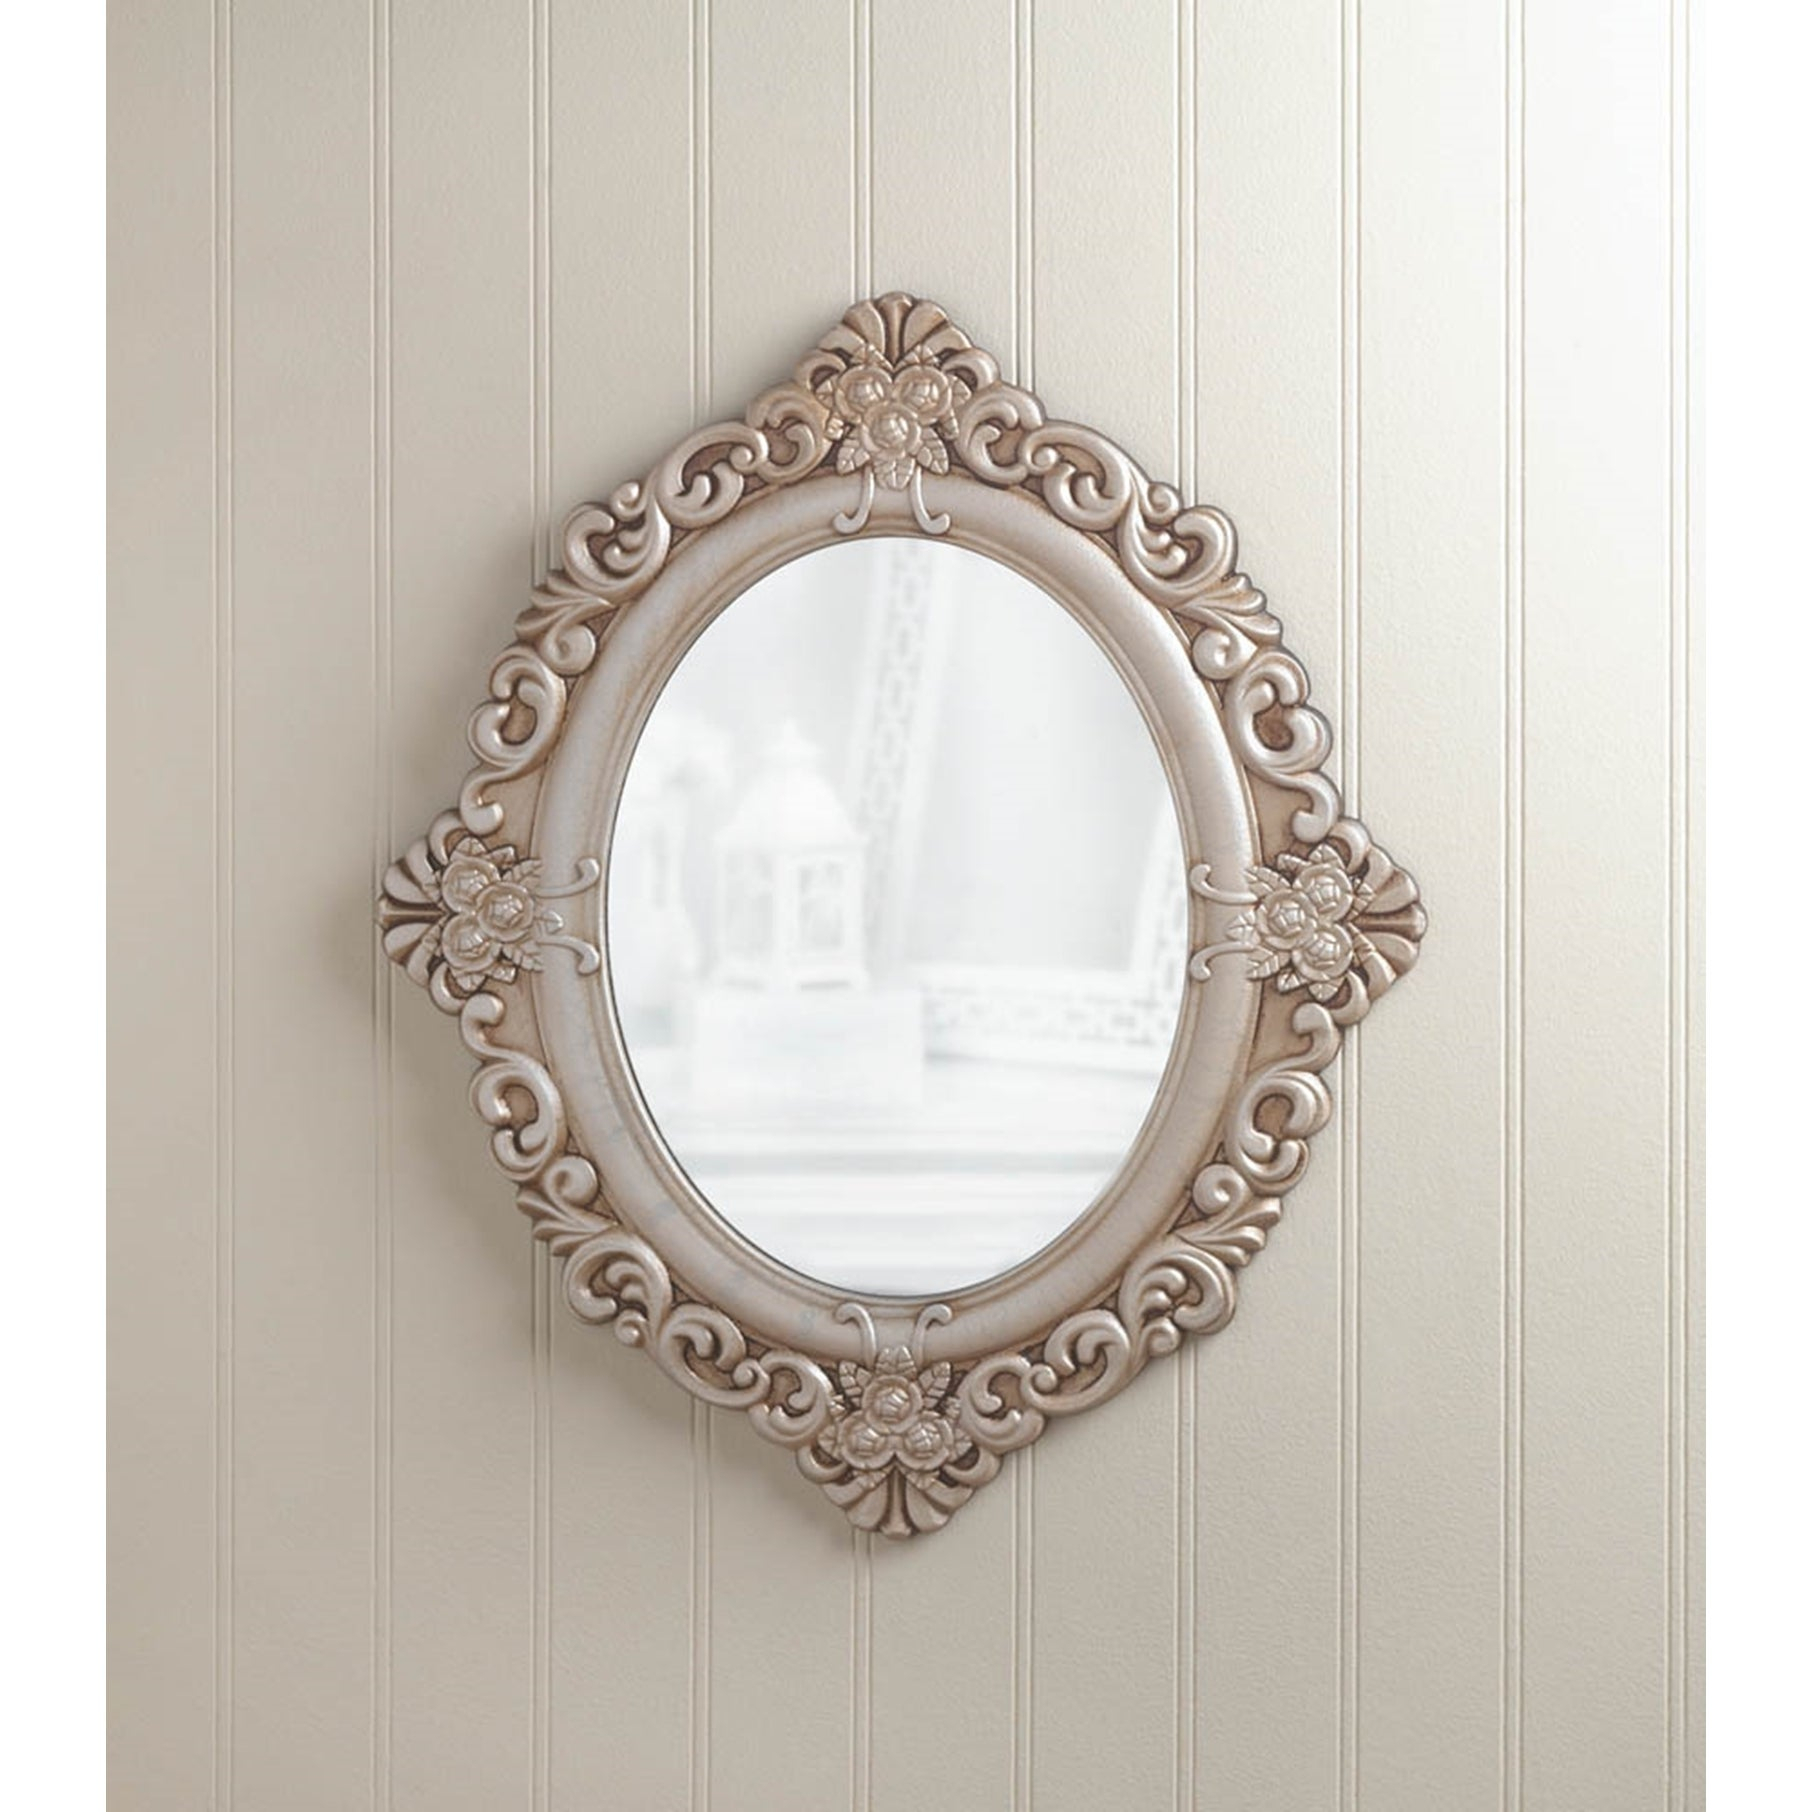 Antique Style Oval Wall Mirror – Antique White Within Oval Wood Wall Mirrors (View 9 of 20)